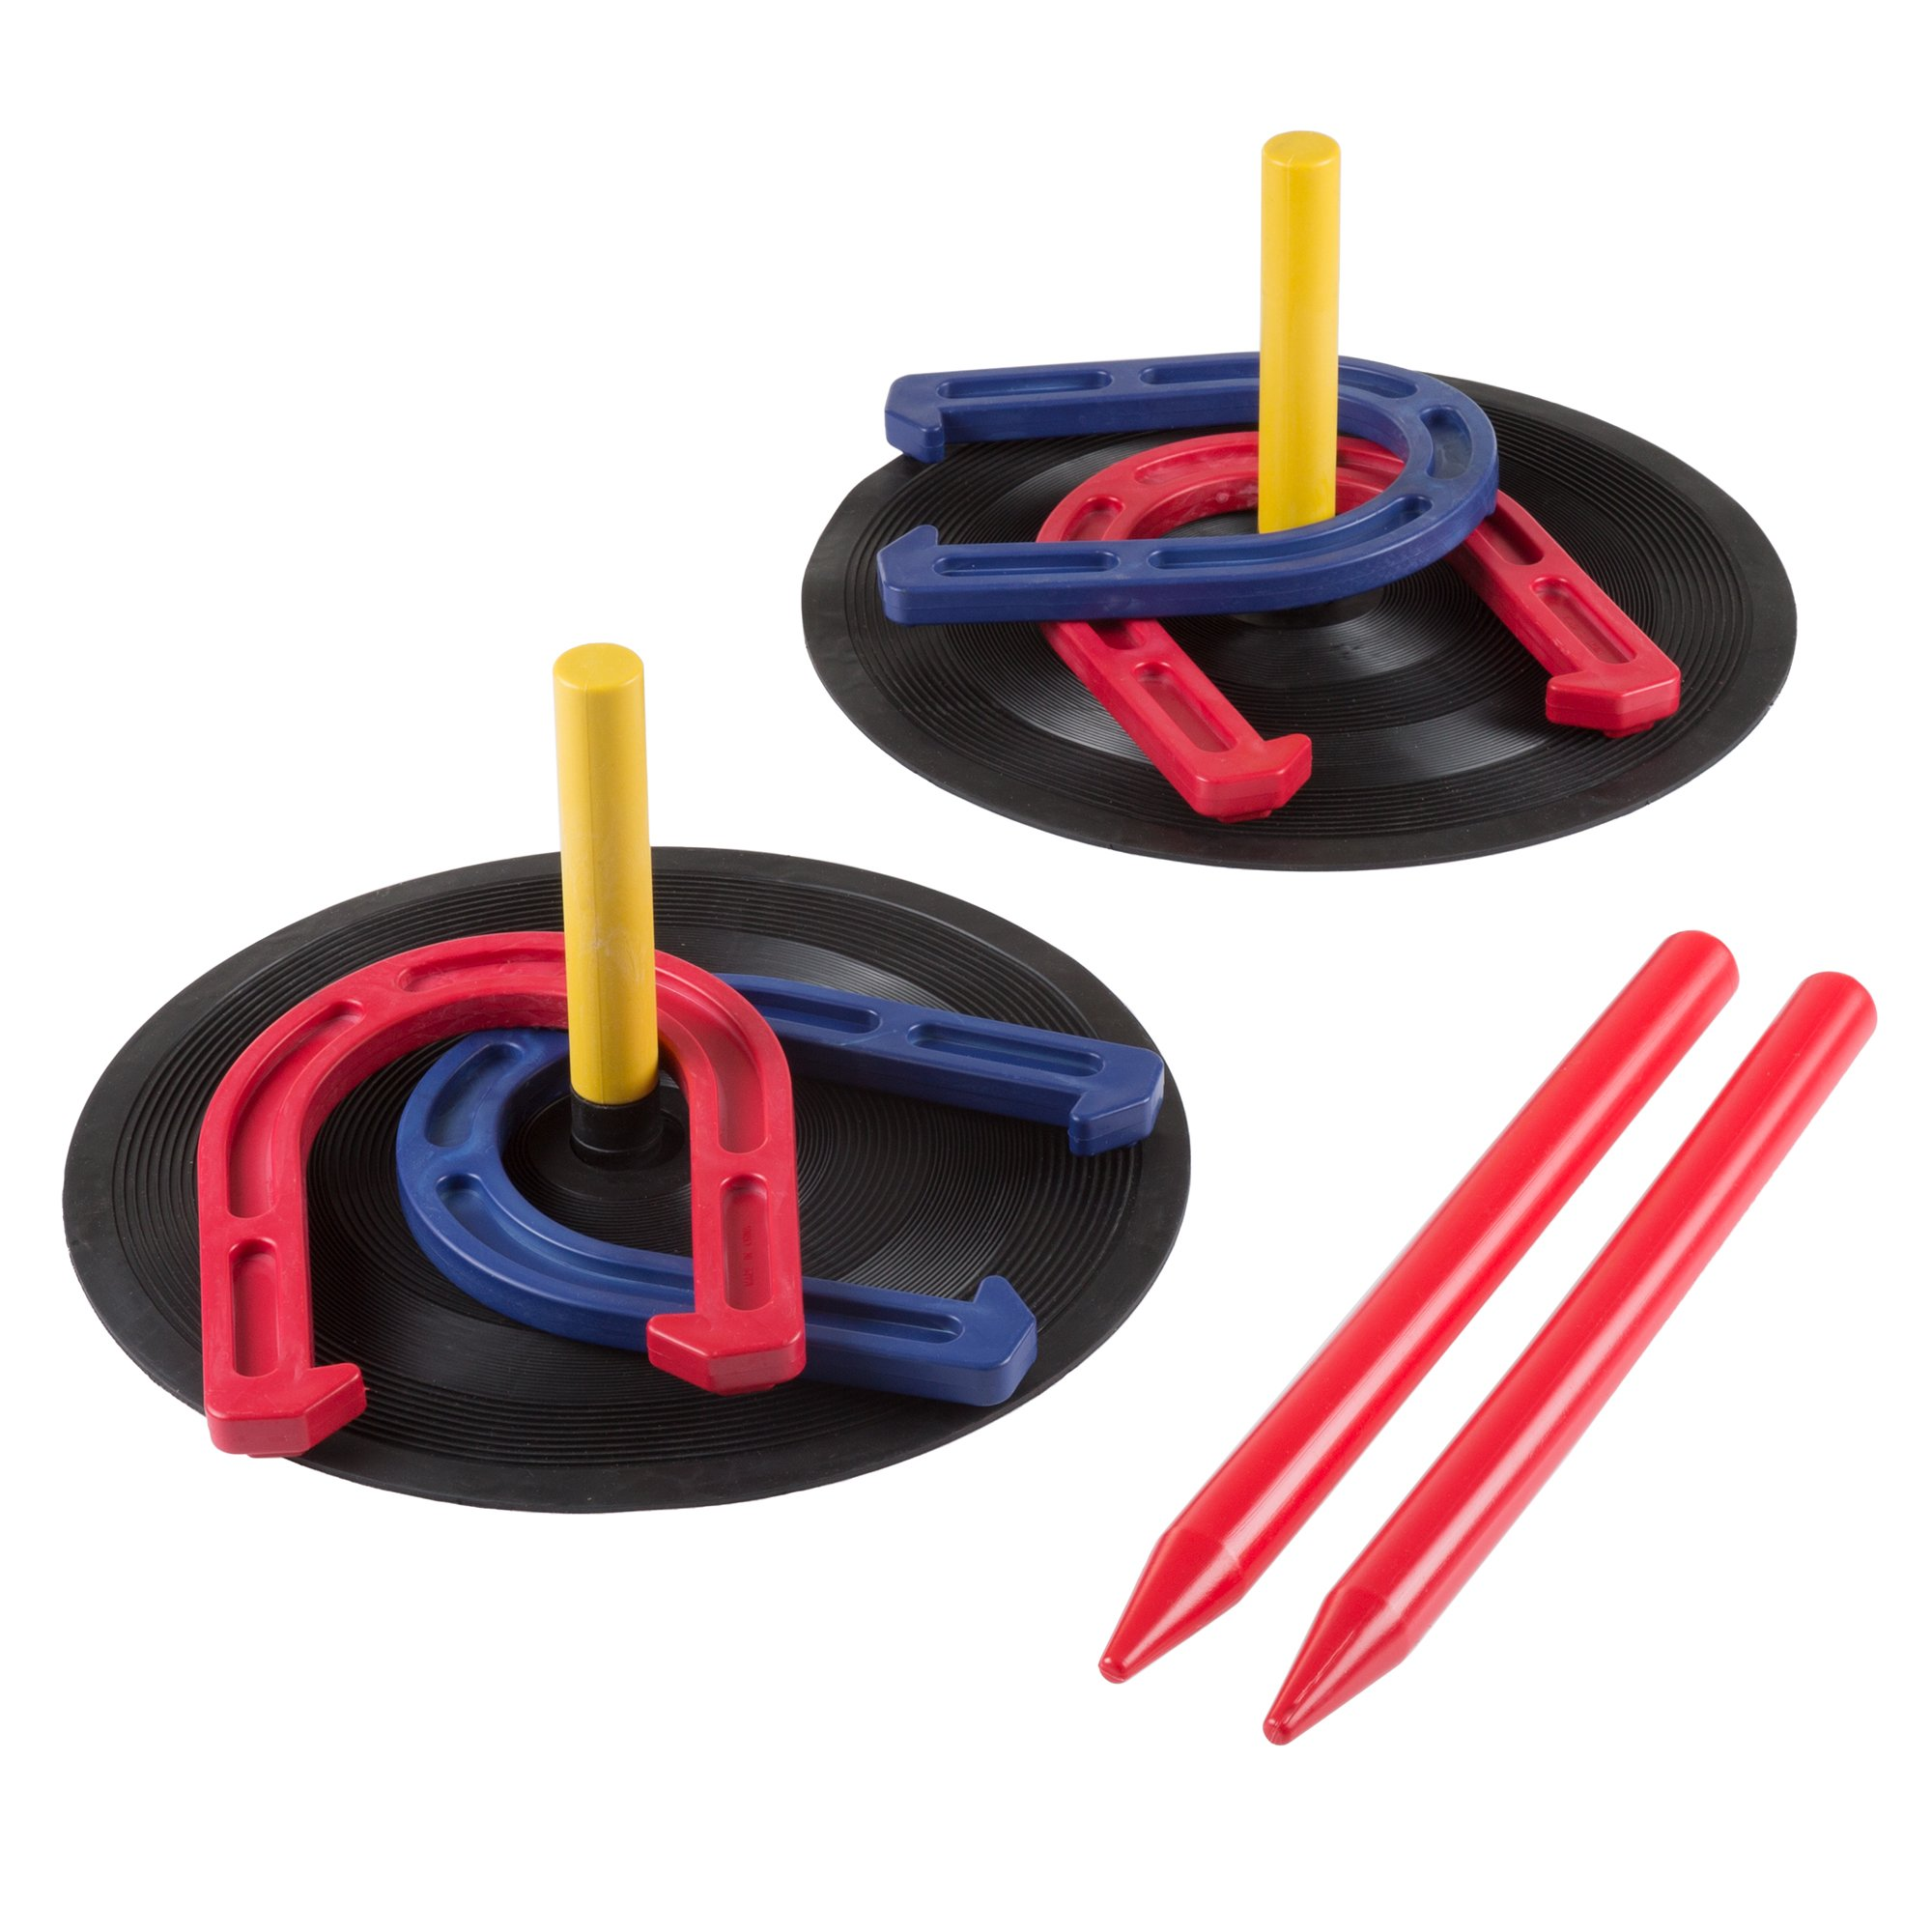 Hey! Play! Rubber Horseshoes Game Set for Outdoor and Indoor Games - Perfect for Tailgating, Camping, Backyard and Inside Fun for Adults and Kids by